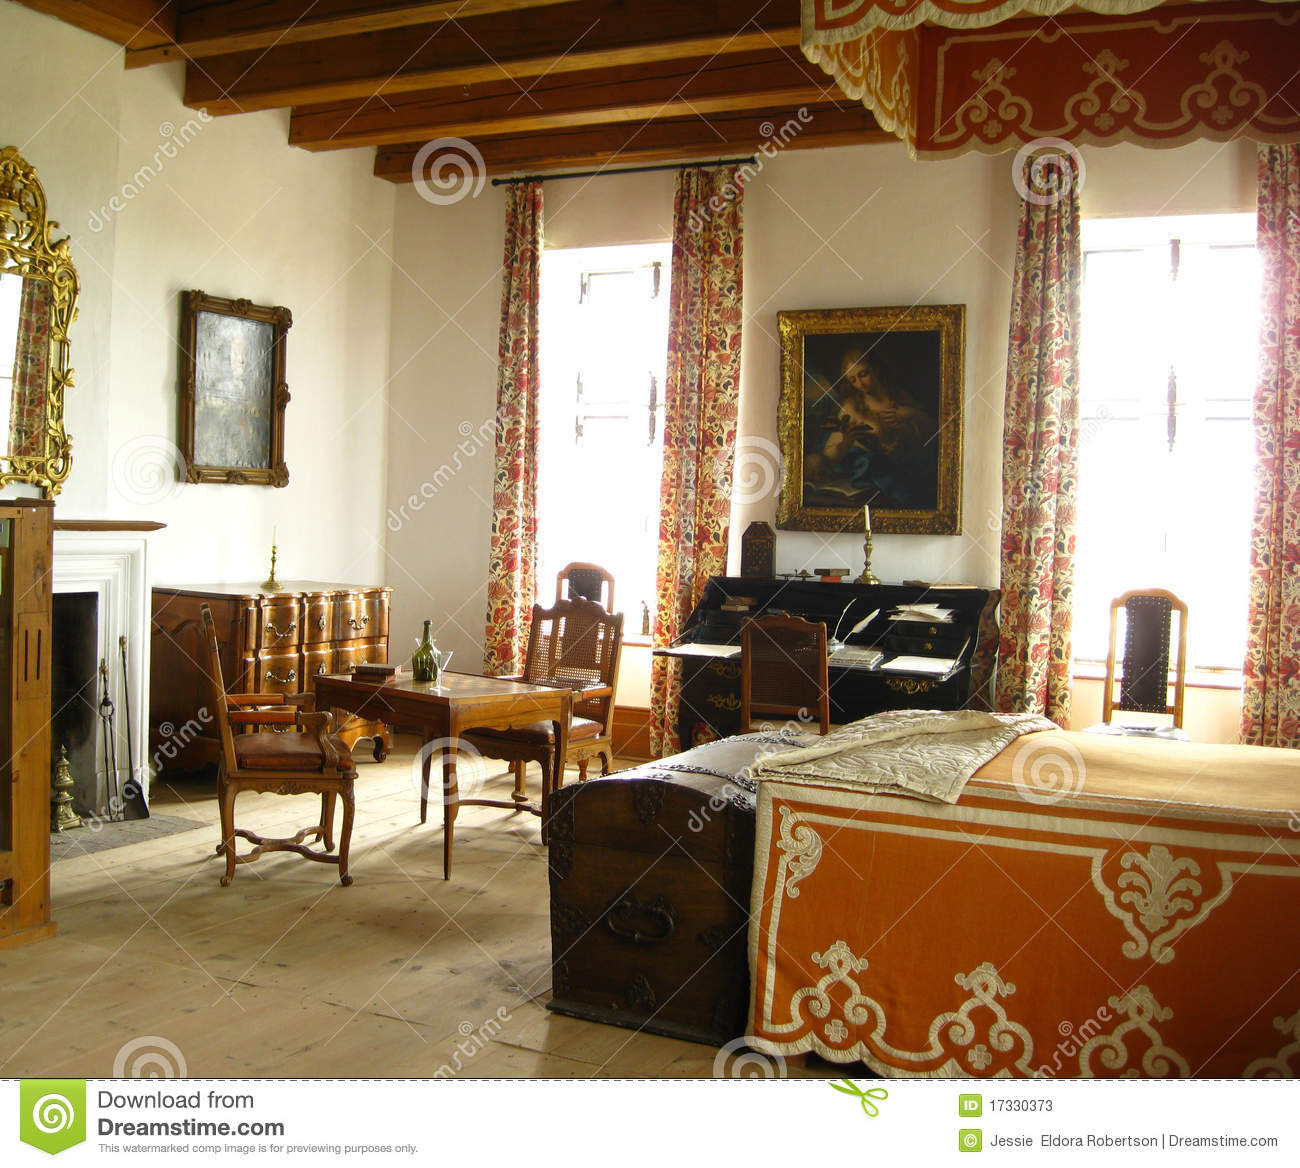 Image Result For French Themed Bedroom